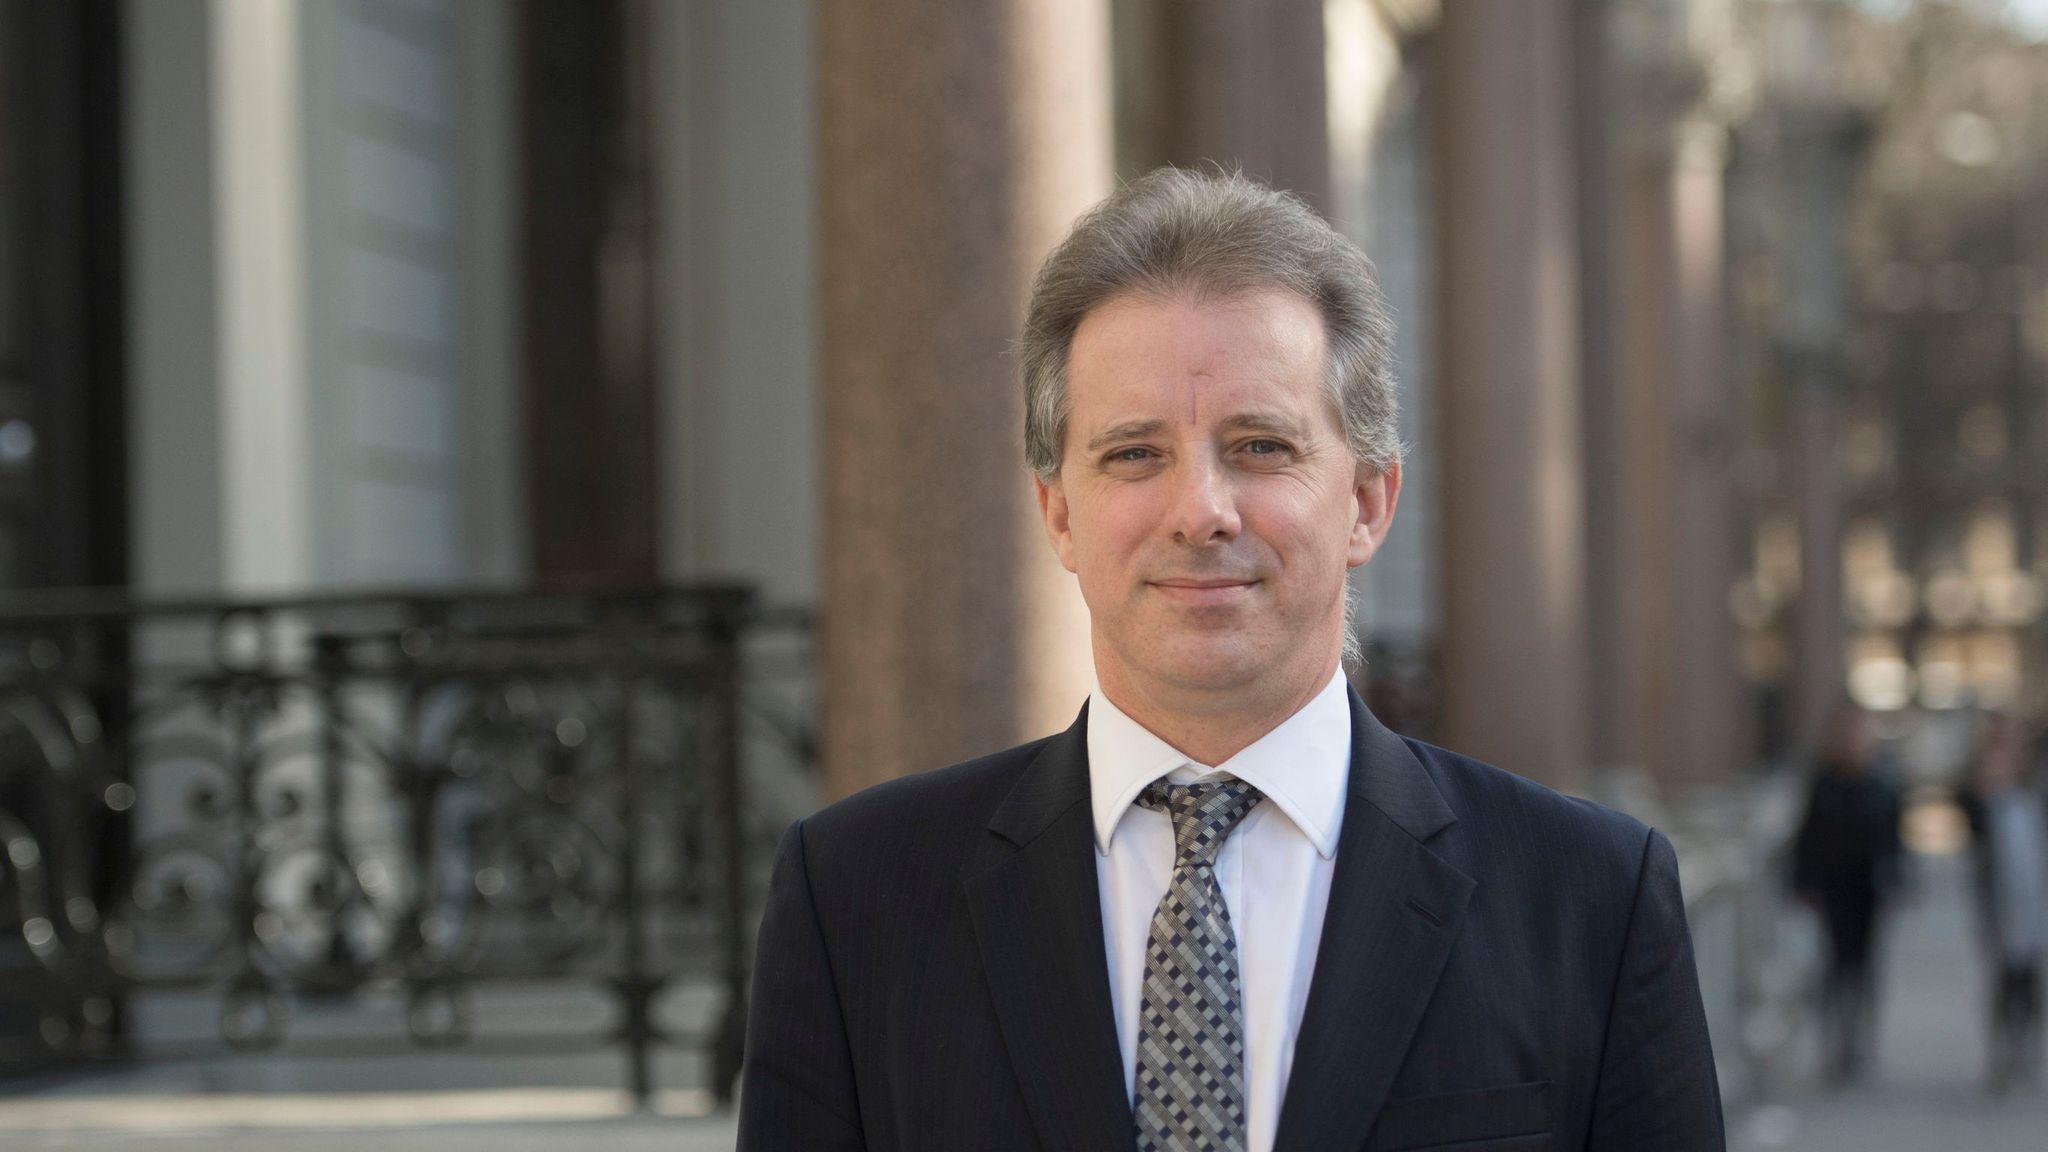 'Fraught with danger': Ex-MI6 officer behind Russia dossier warns about discussing sources